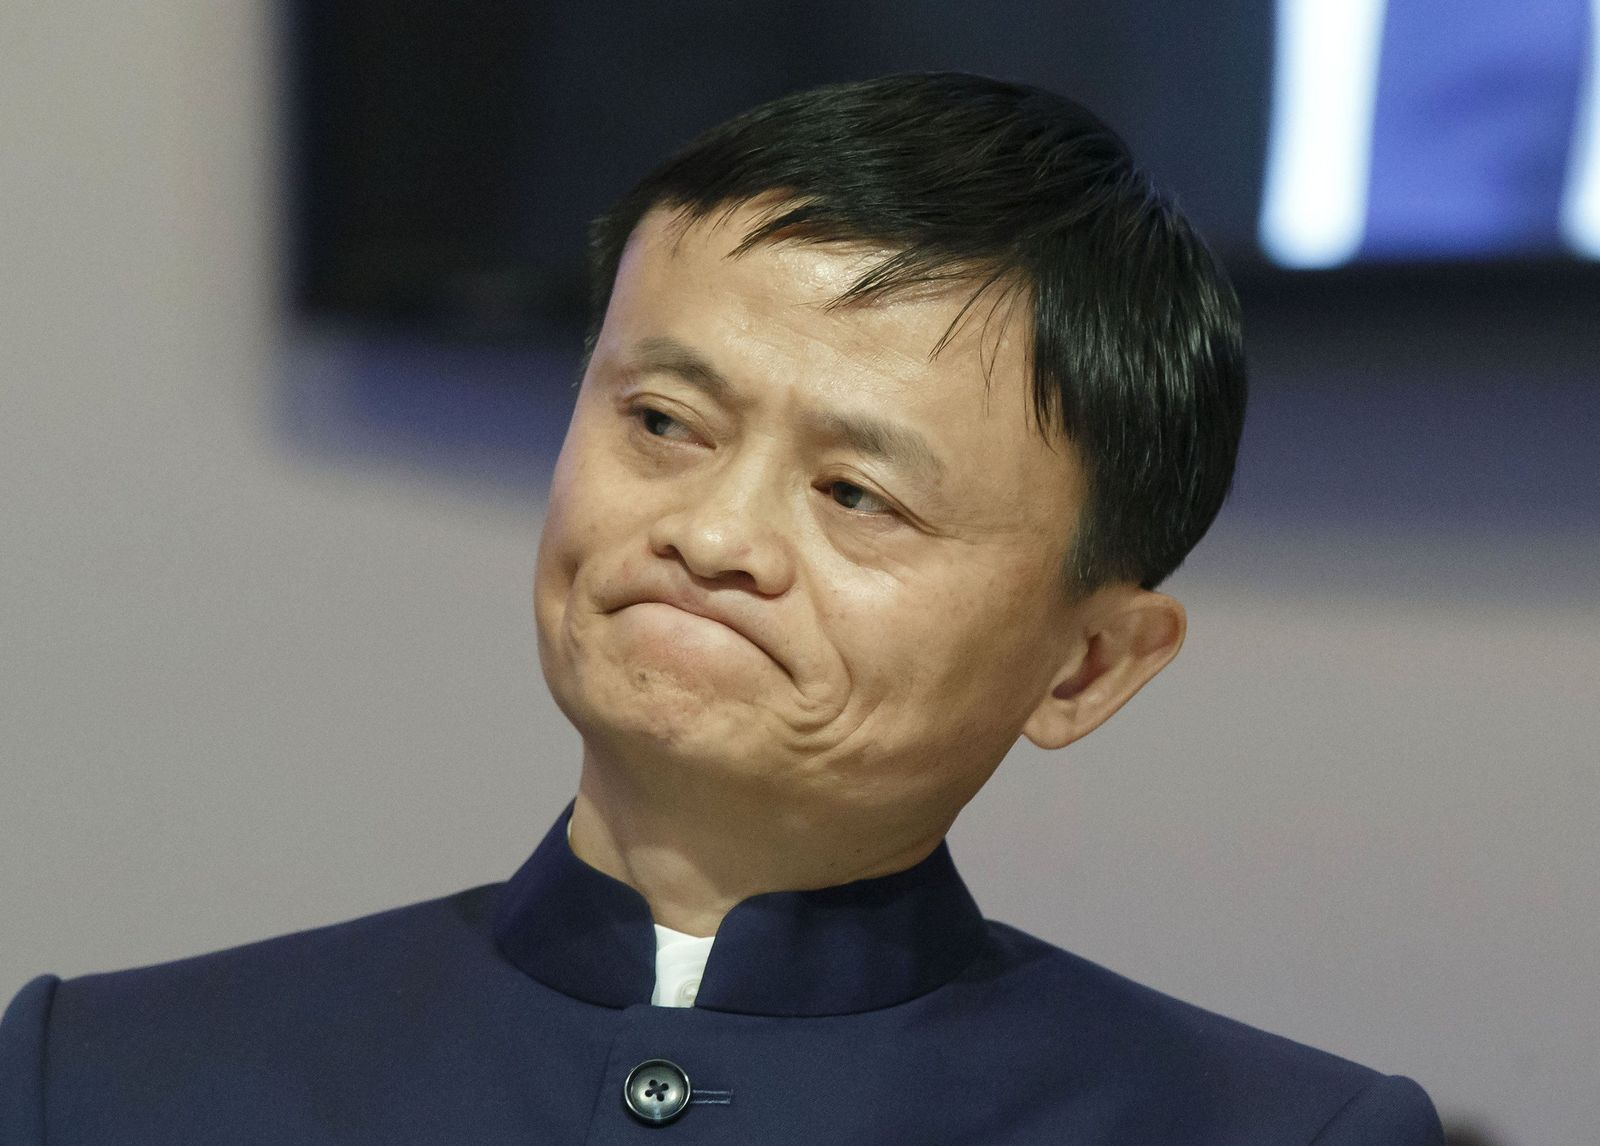 Switzerland Davos Forum Jack Ma